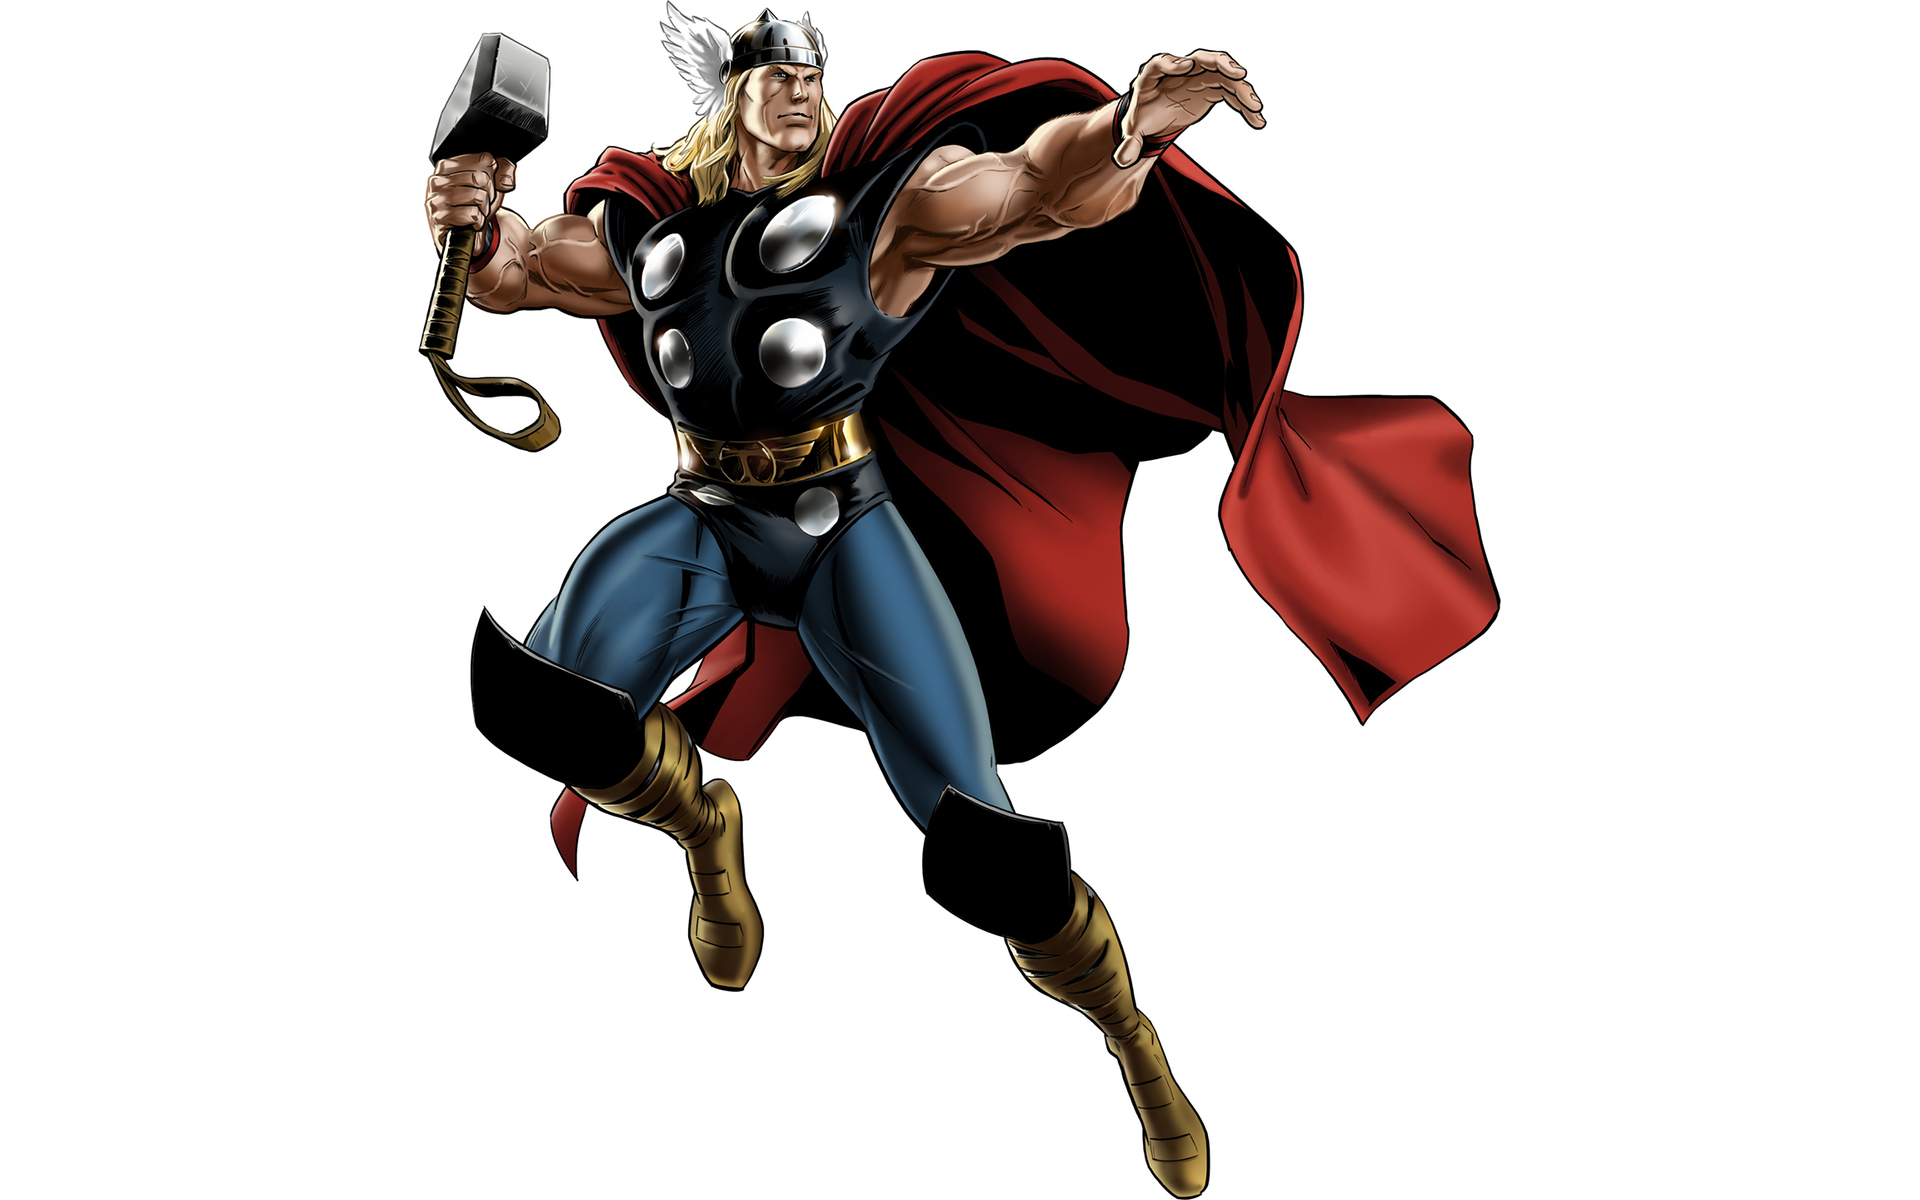 thor-marvel-comic-art-fh.jpg